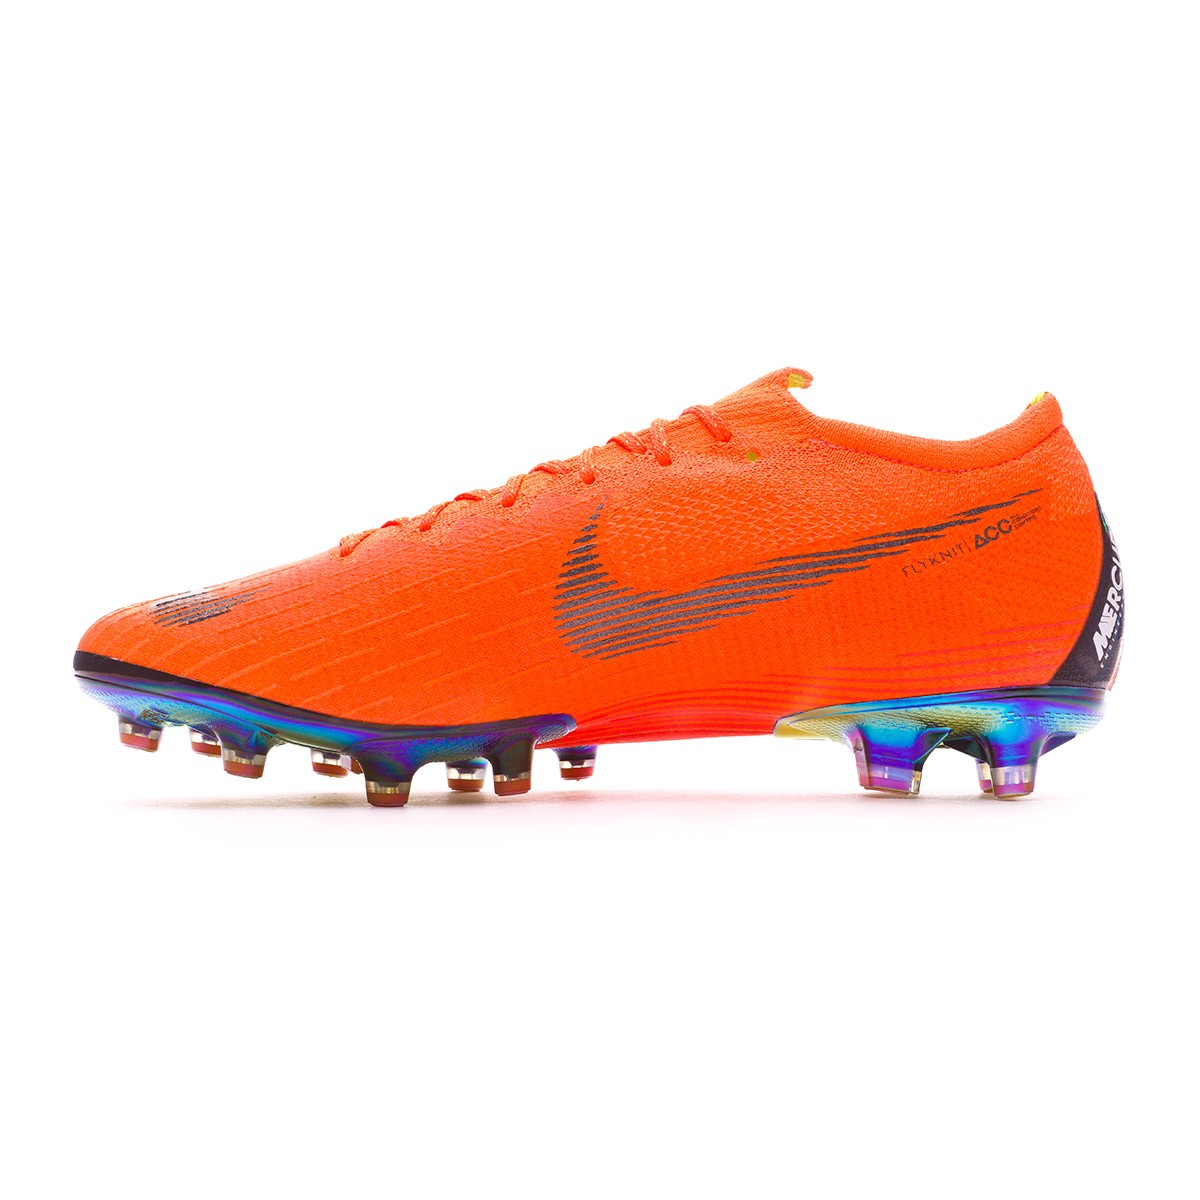 4b1faa855b7a Football Boots Nike Mercurial Vapor XII Elite AG-Pro Total  orange-Black-Volt - Tienda de fútbol Fútbol Emotion